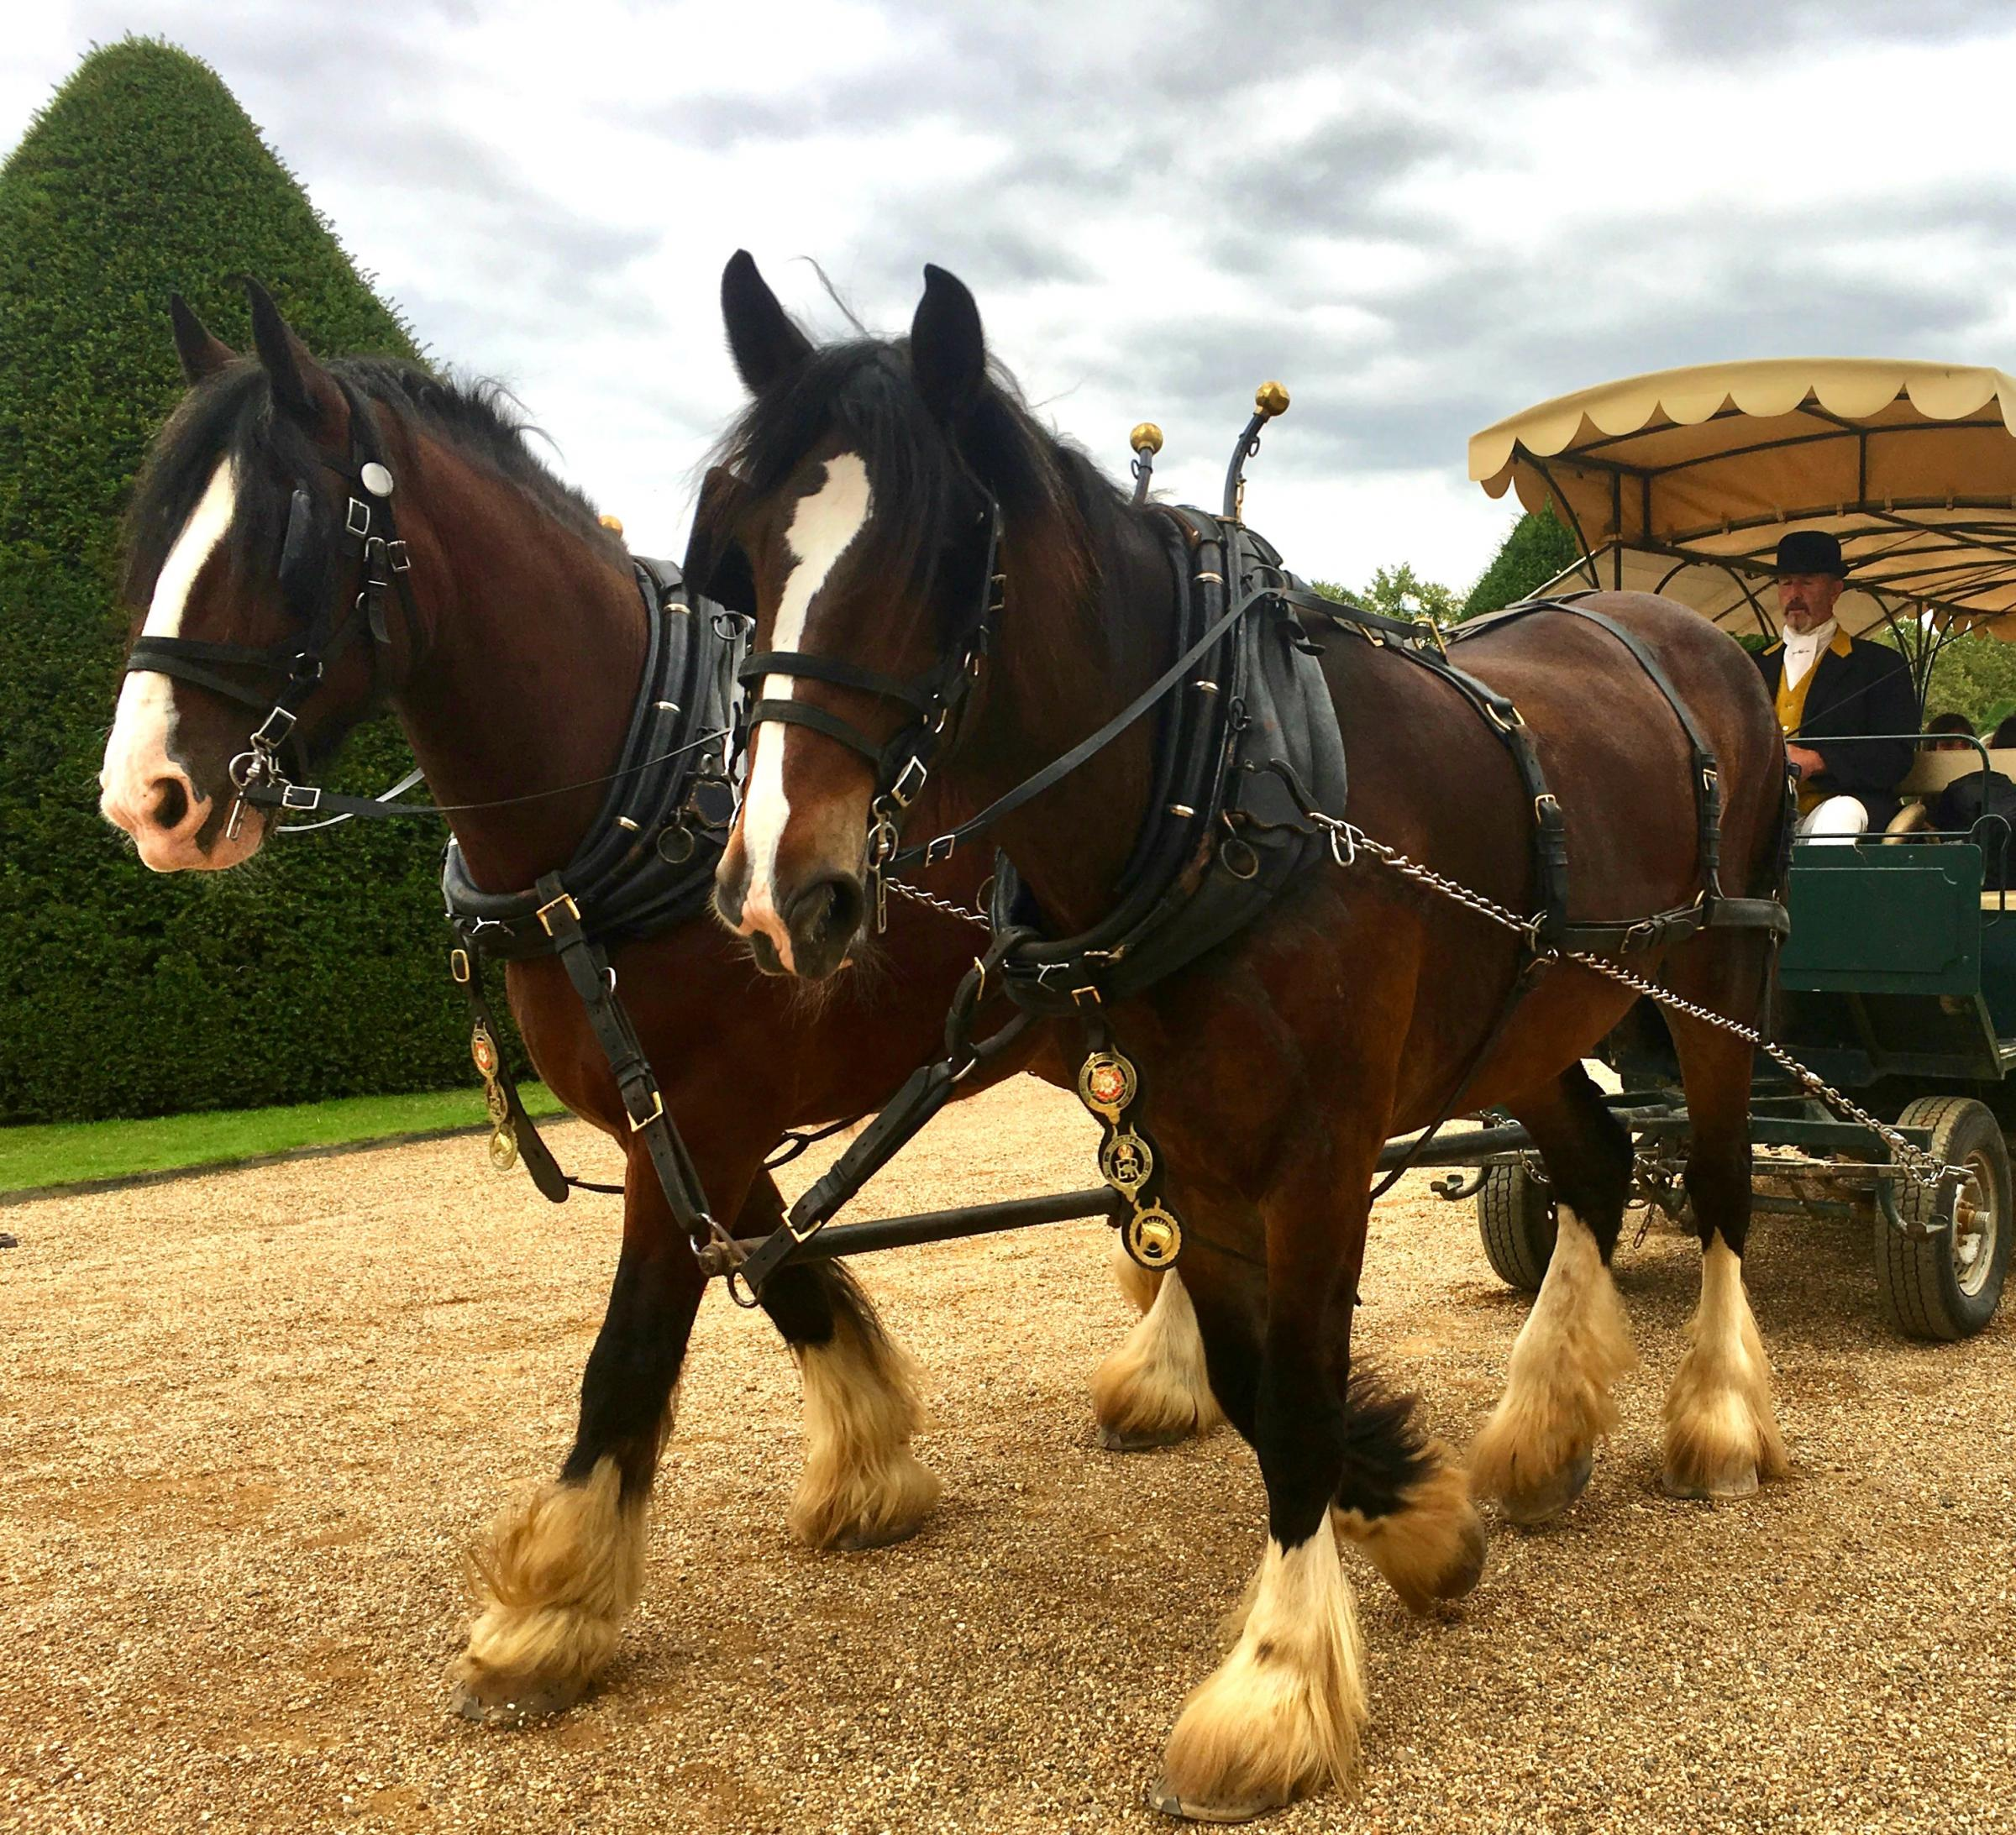 Festive carriage rides at Morden Hall Park NT